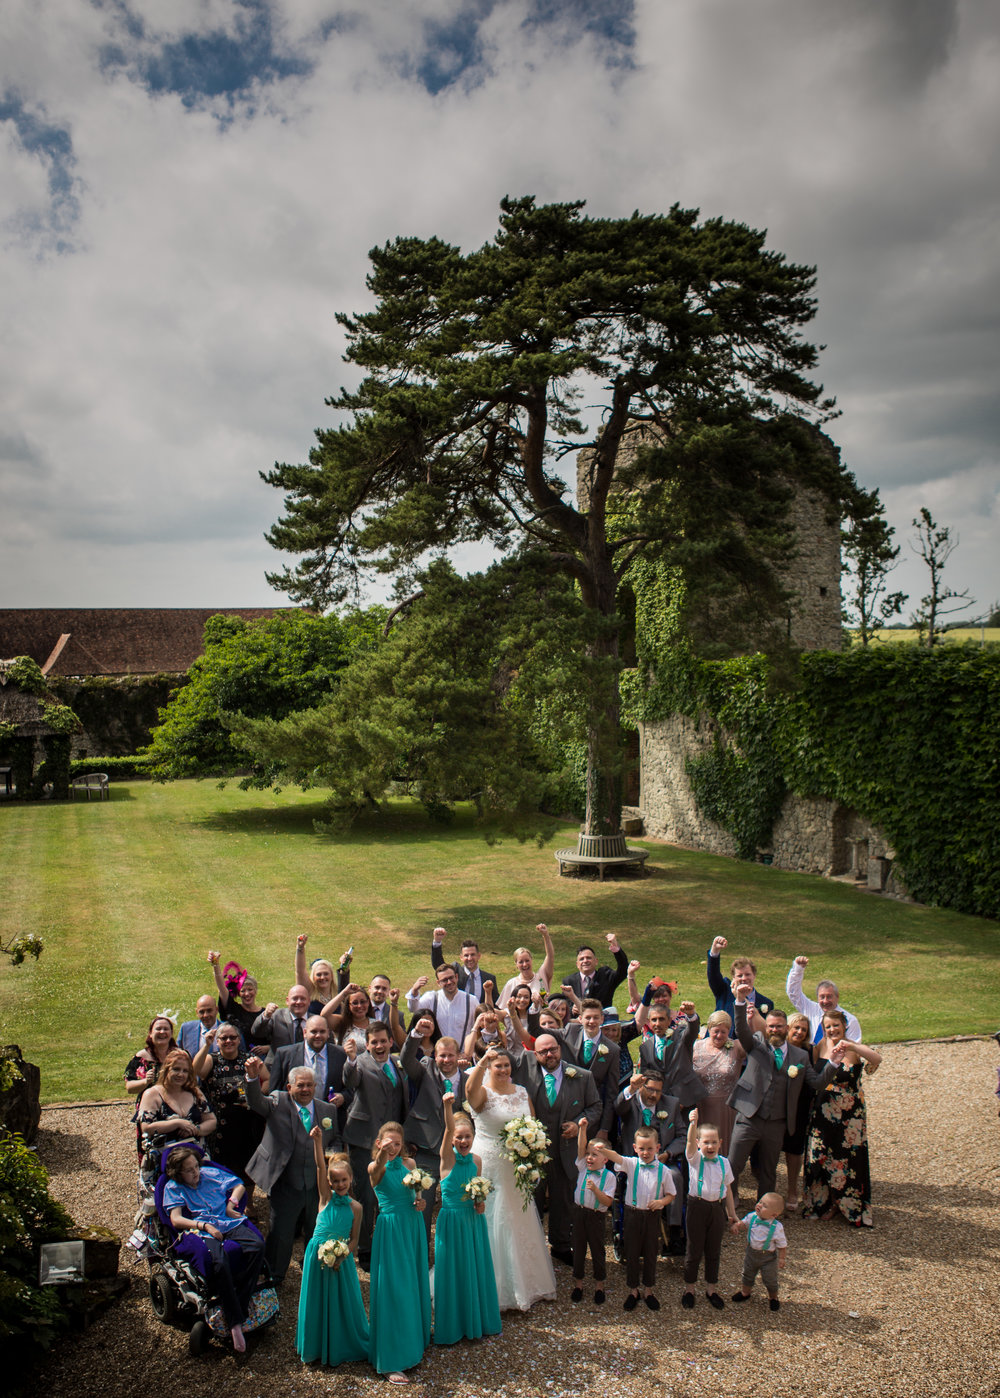 westenhangar-castle-kent-london-wedding-photography-formal-portrait-group-large-45